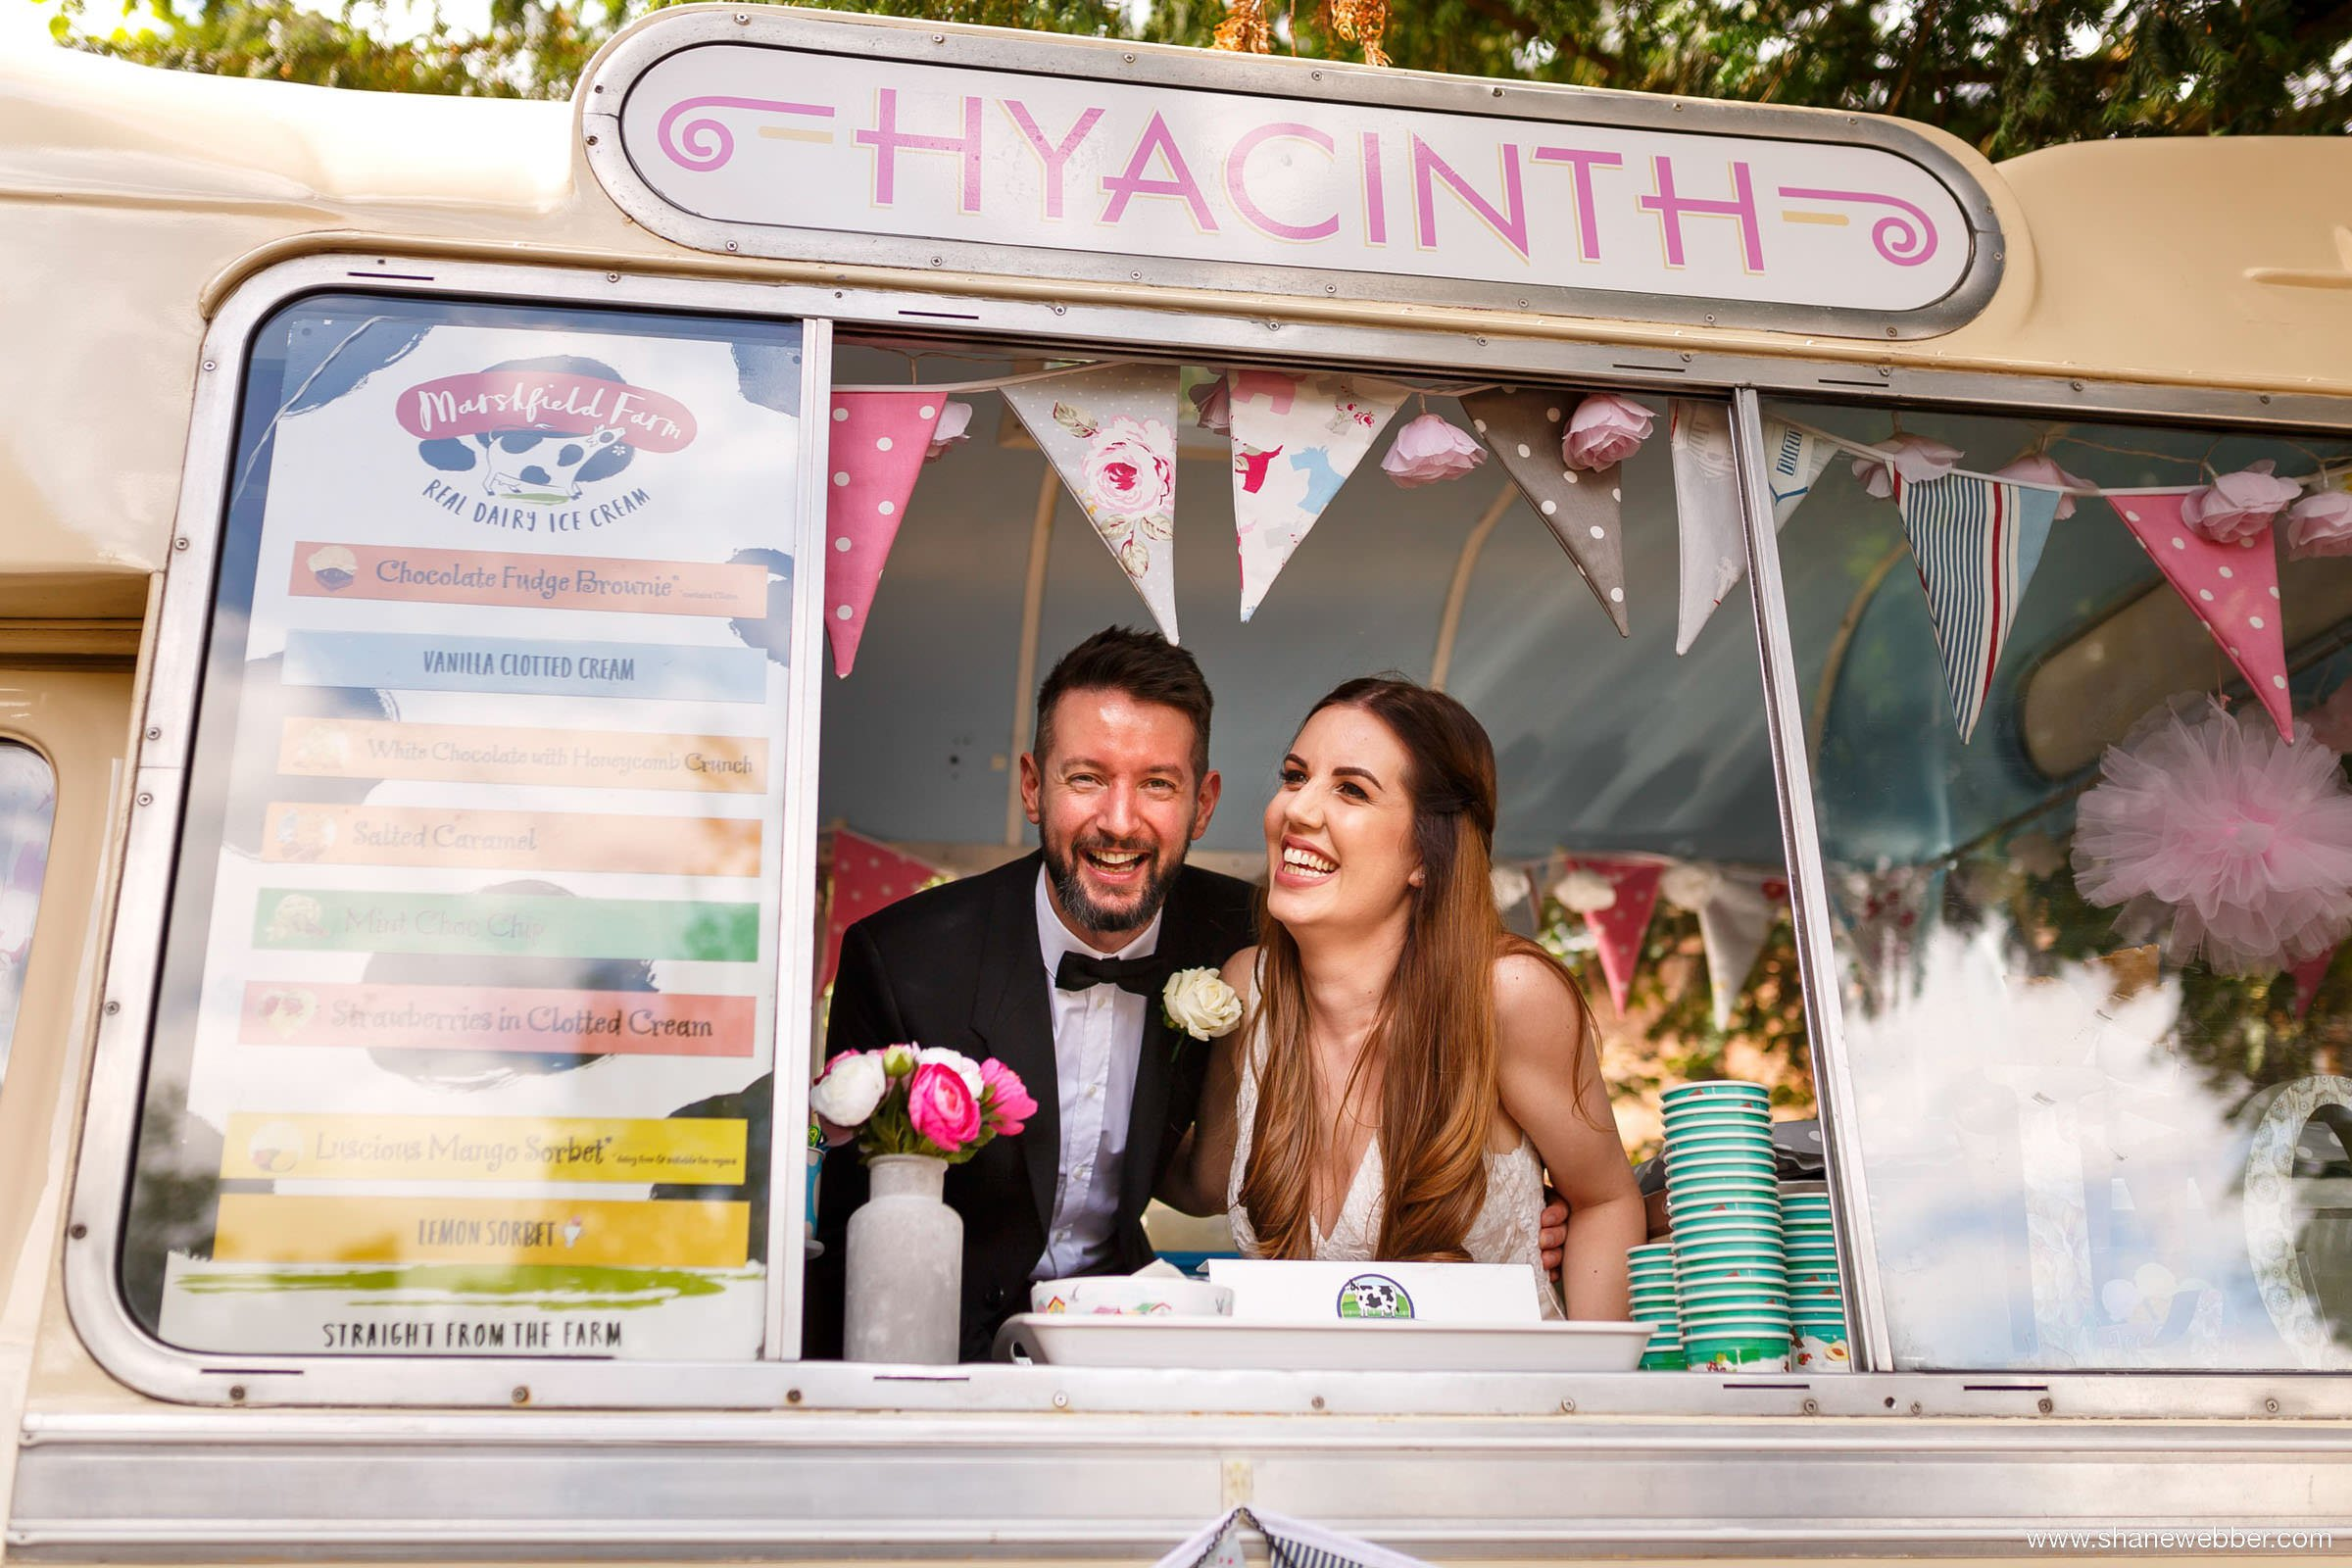 hyacinth wedding ice cream